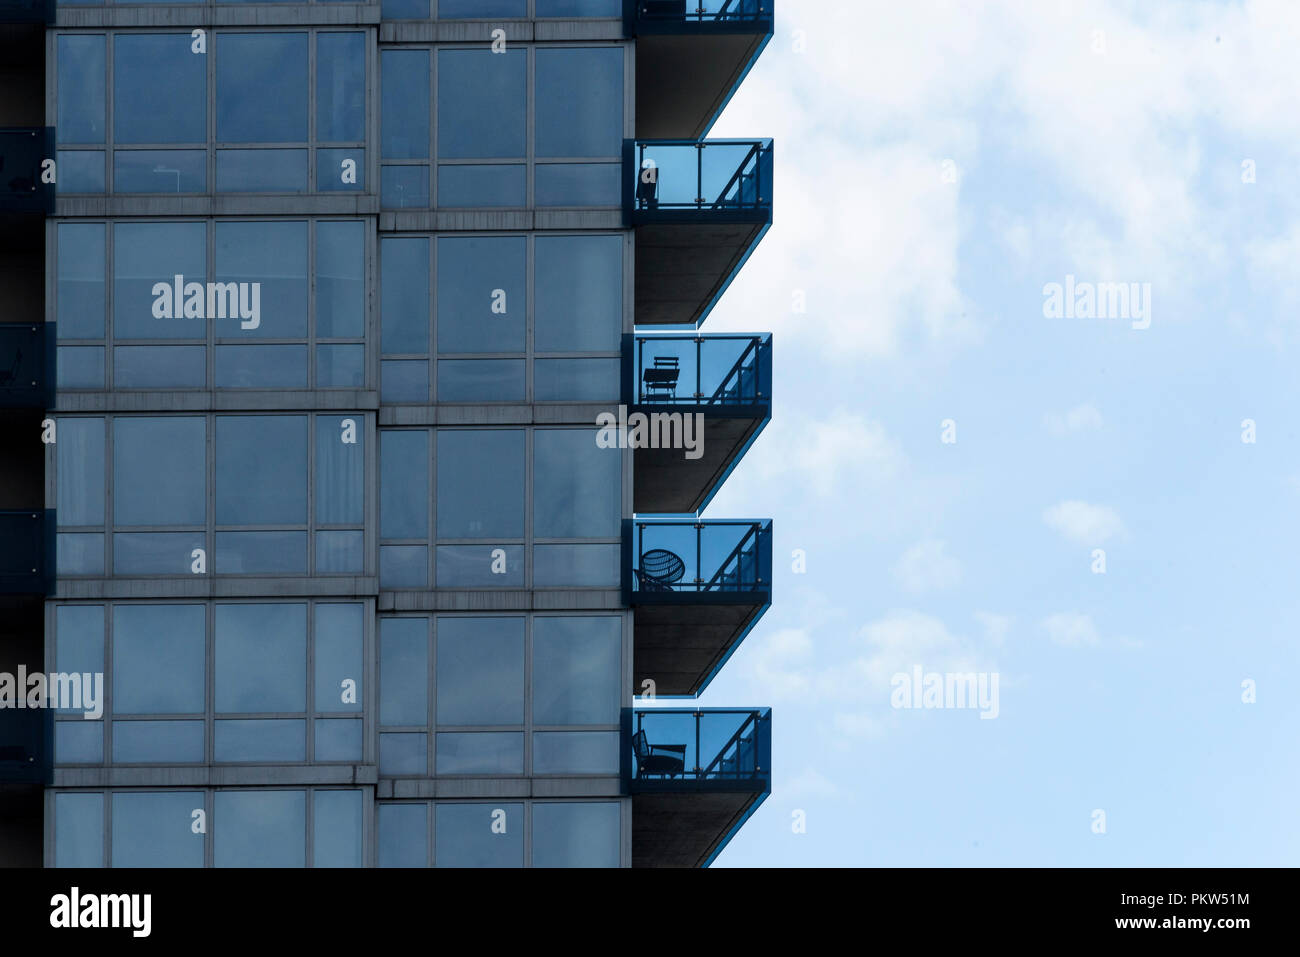 04-2018 New York. USA. Balconies on a condominium in Brooklyn.  Photo: © Simon Grosset - Stock Image